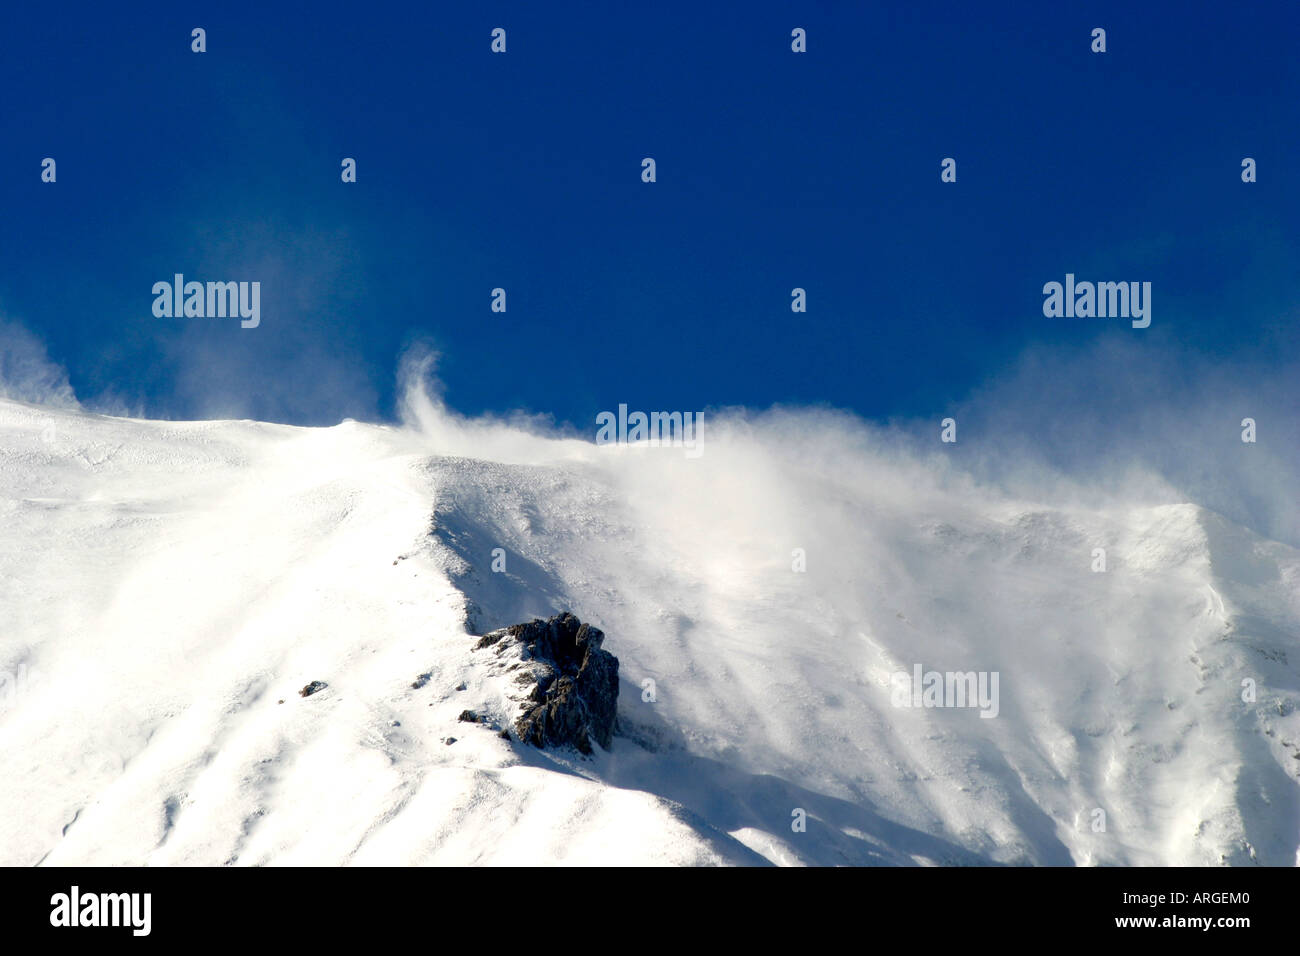 Winter snow blows on the dramatic mountains of the Sibillini National Park which spans Le Marche and Umbria in Italy Stock Photo